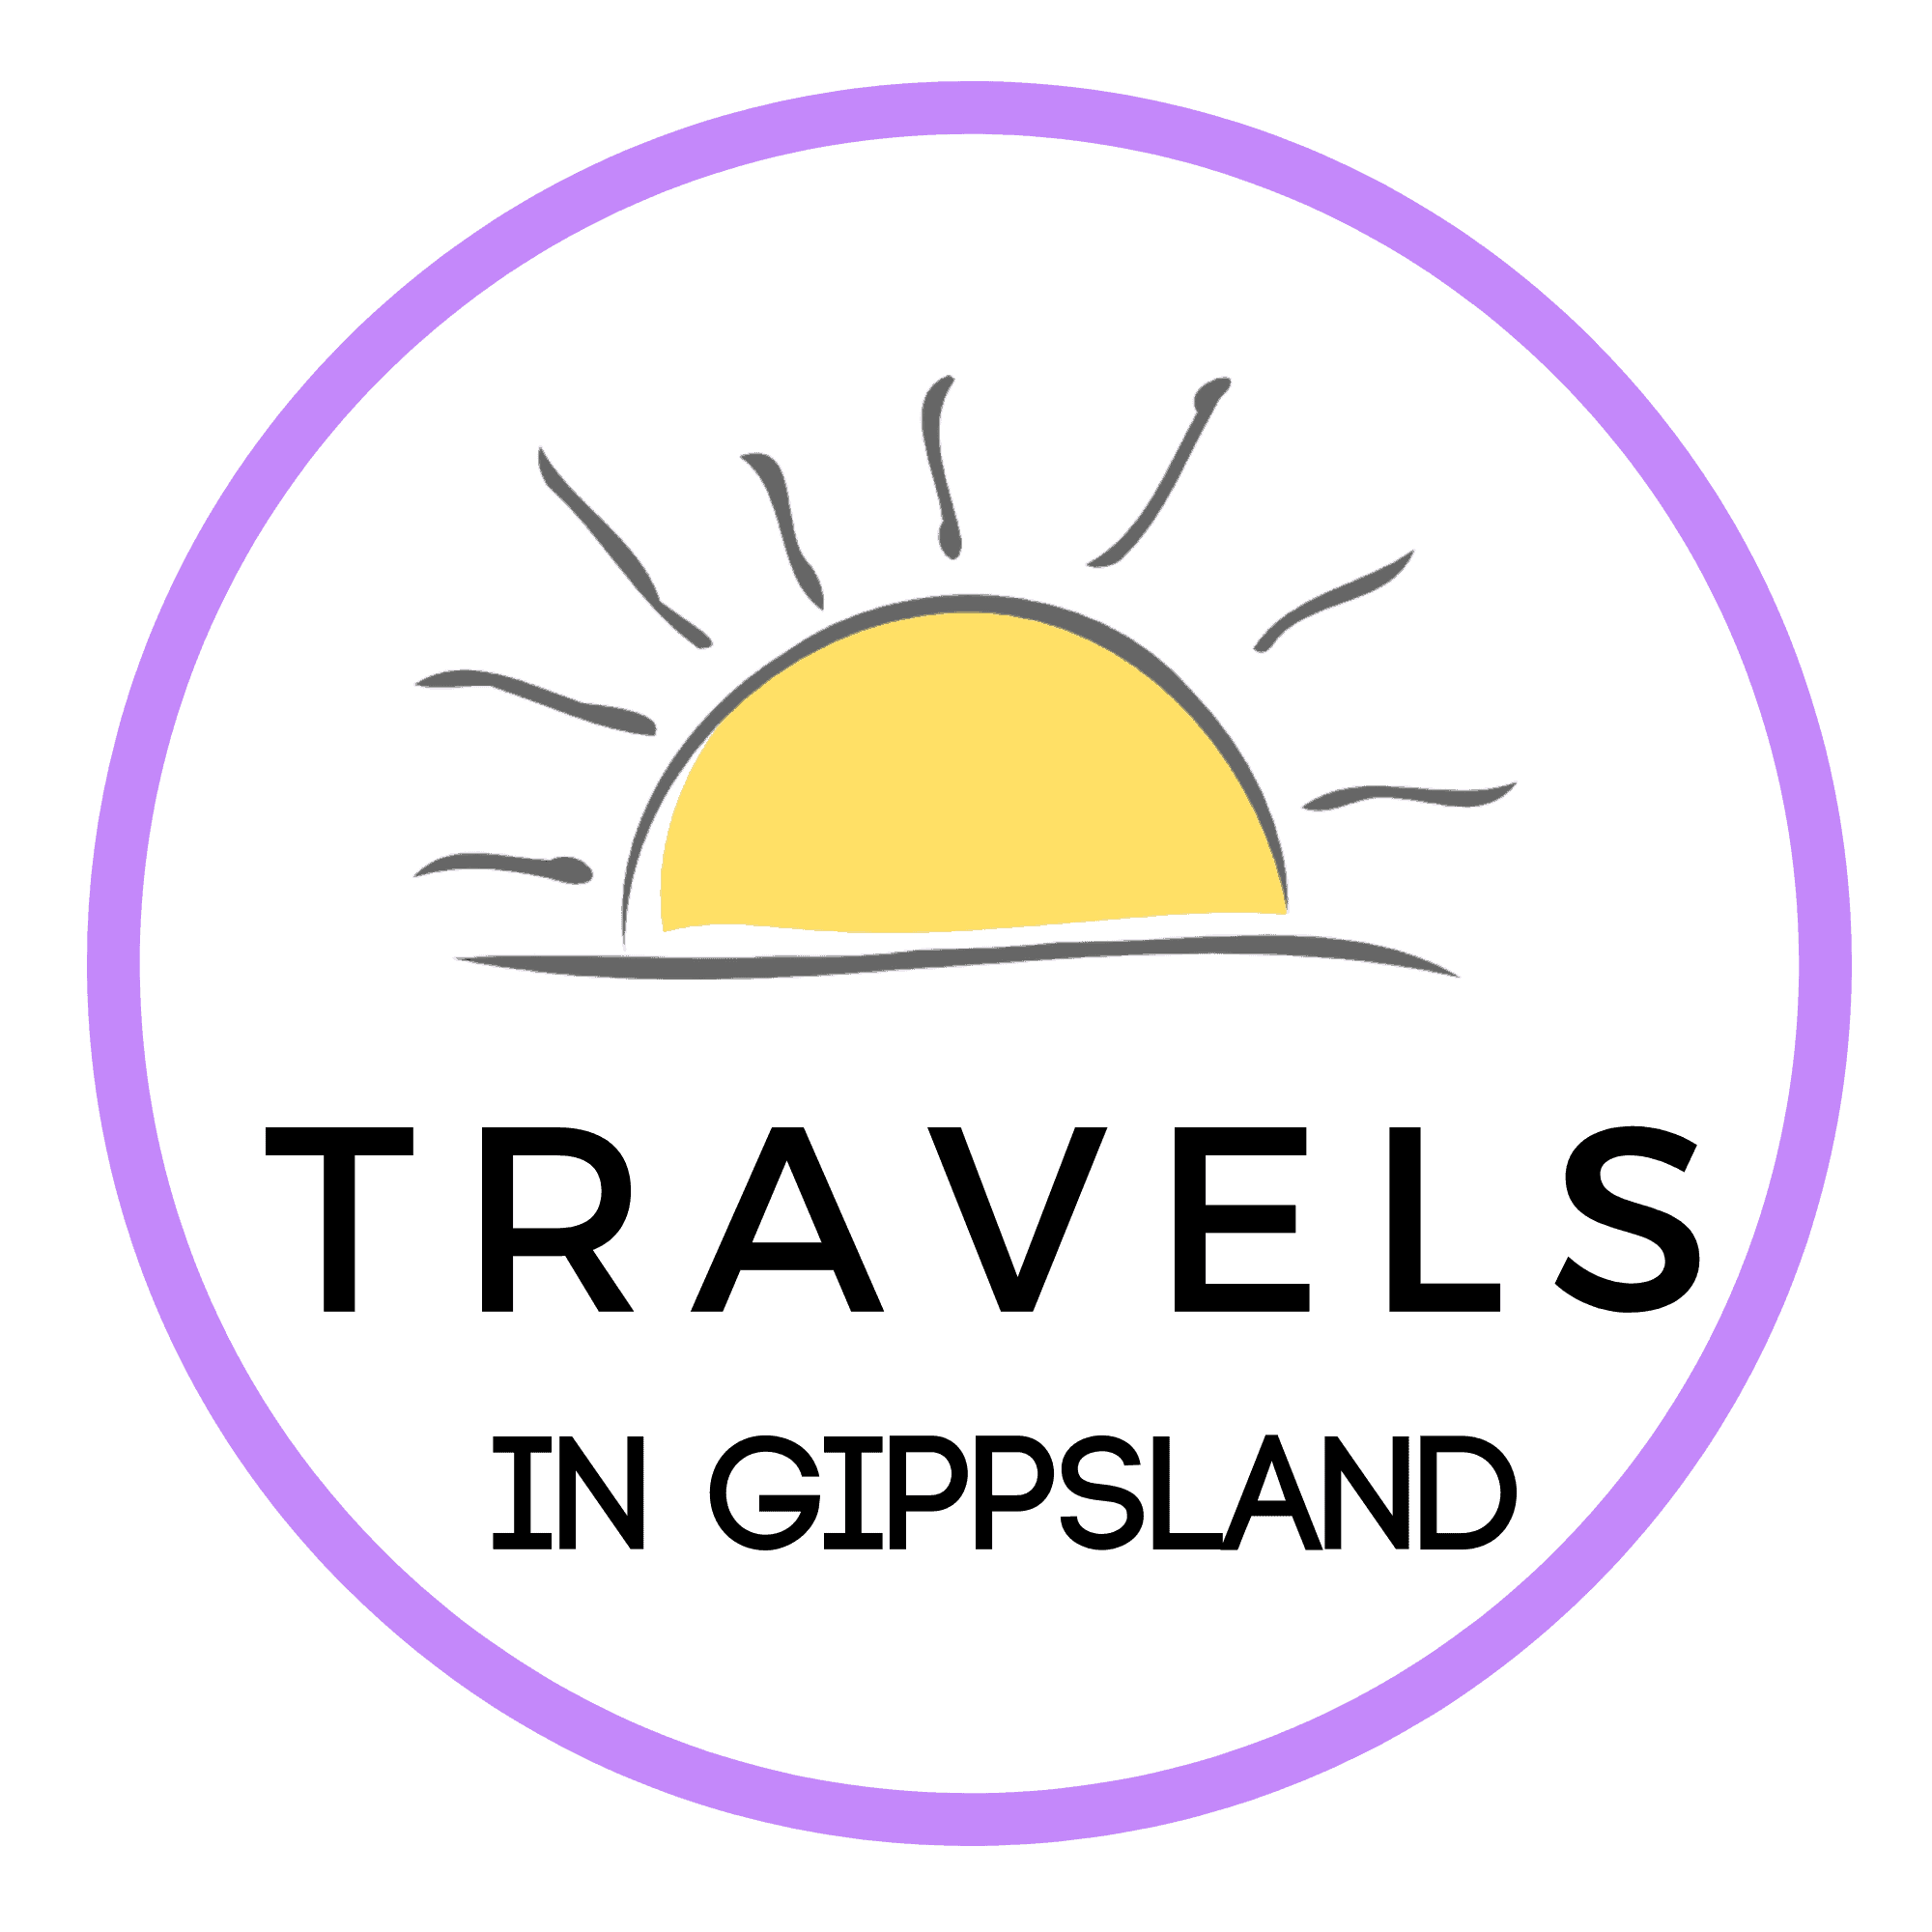 Travels in Gippsland